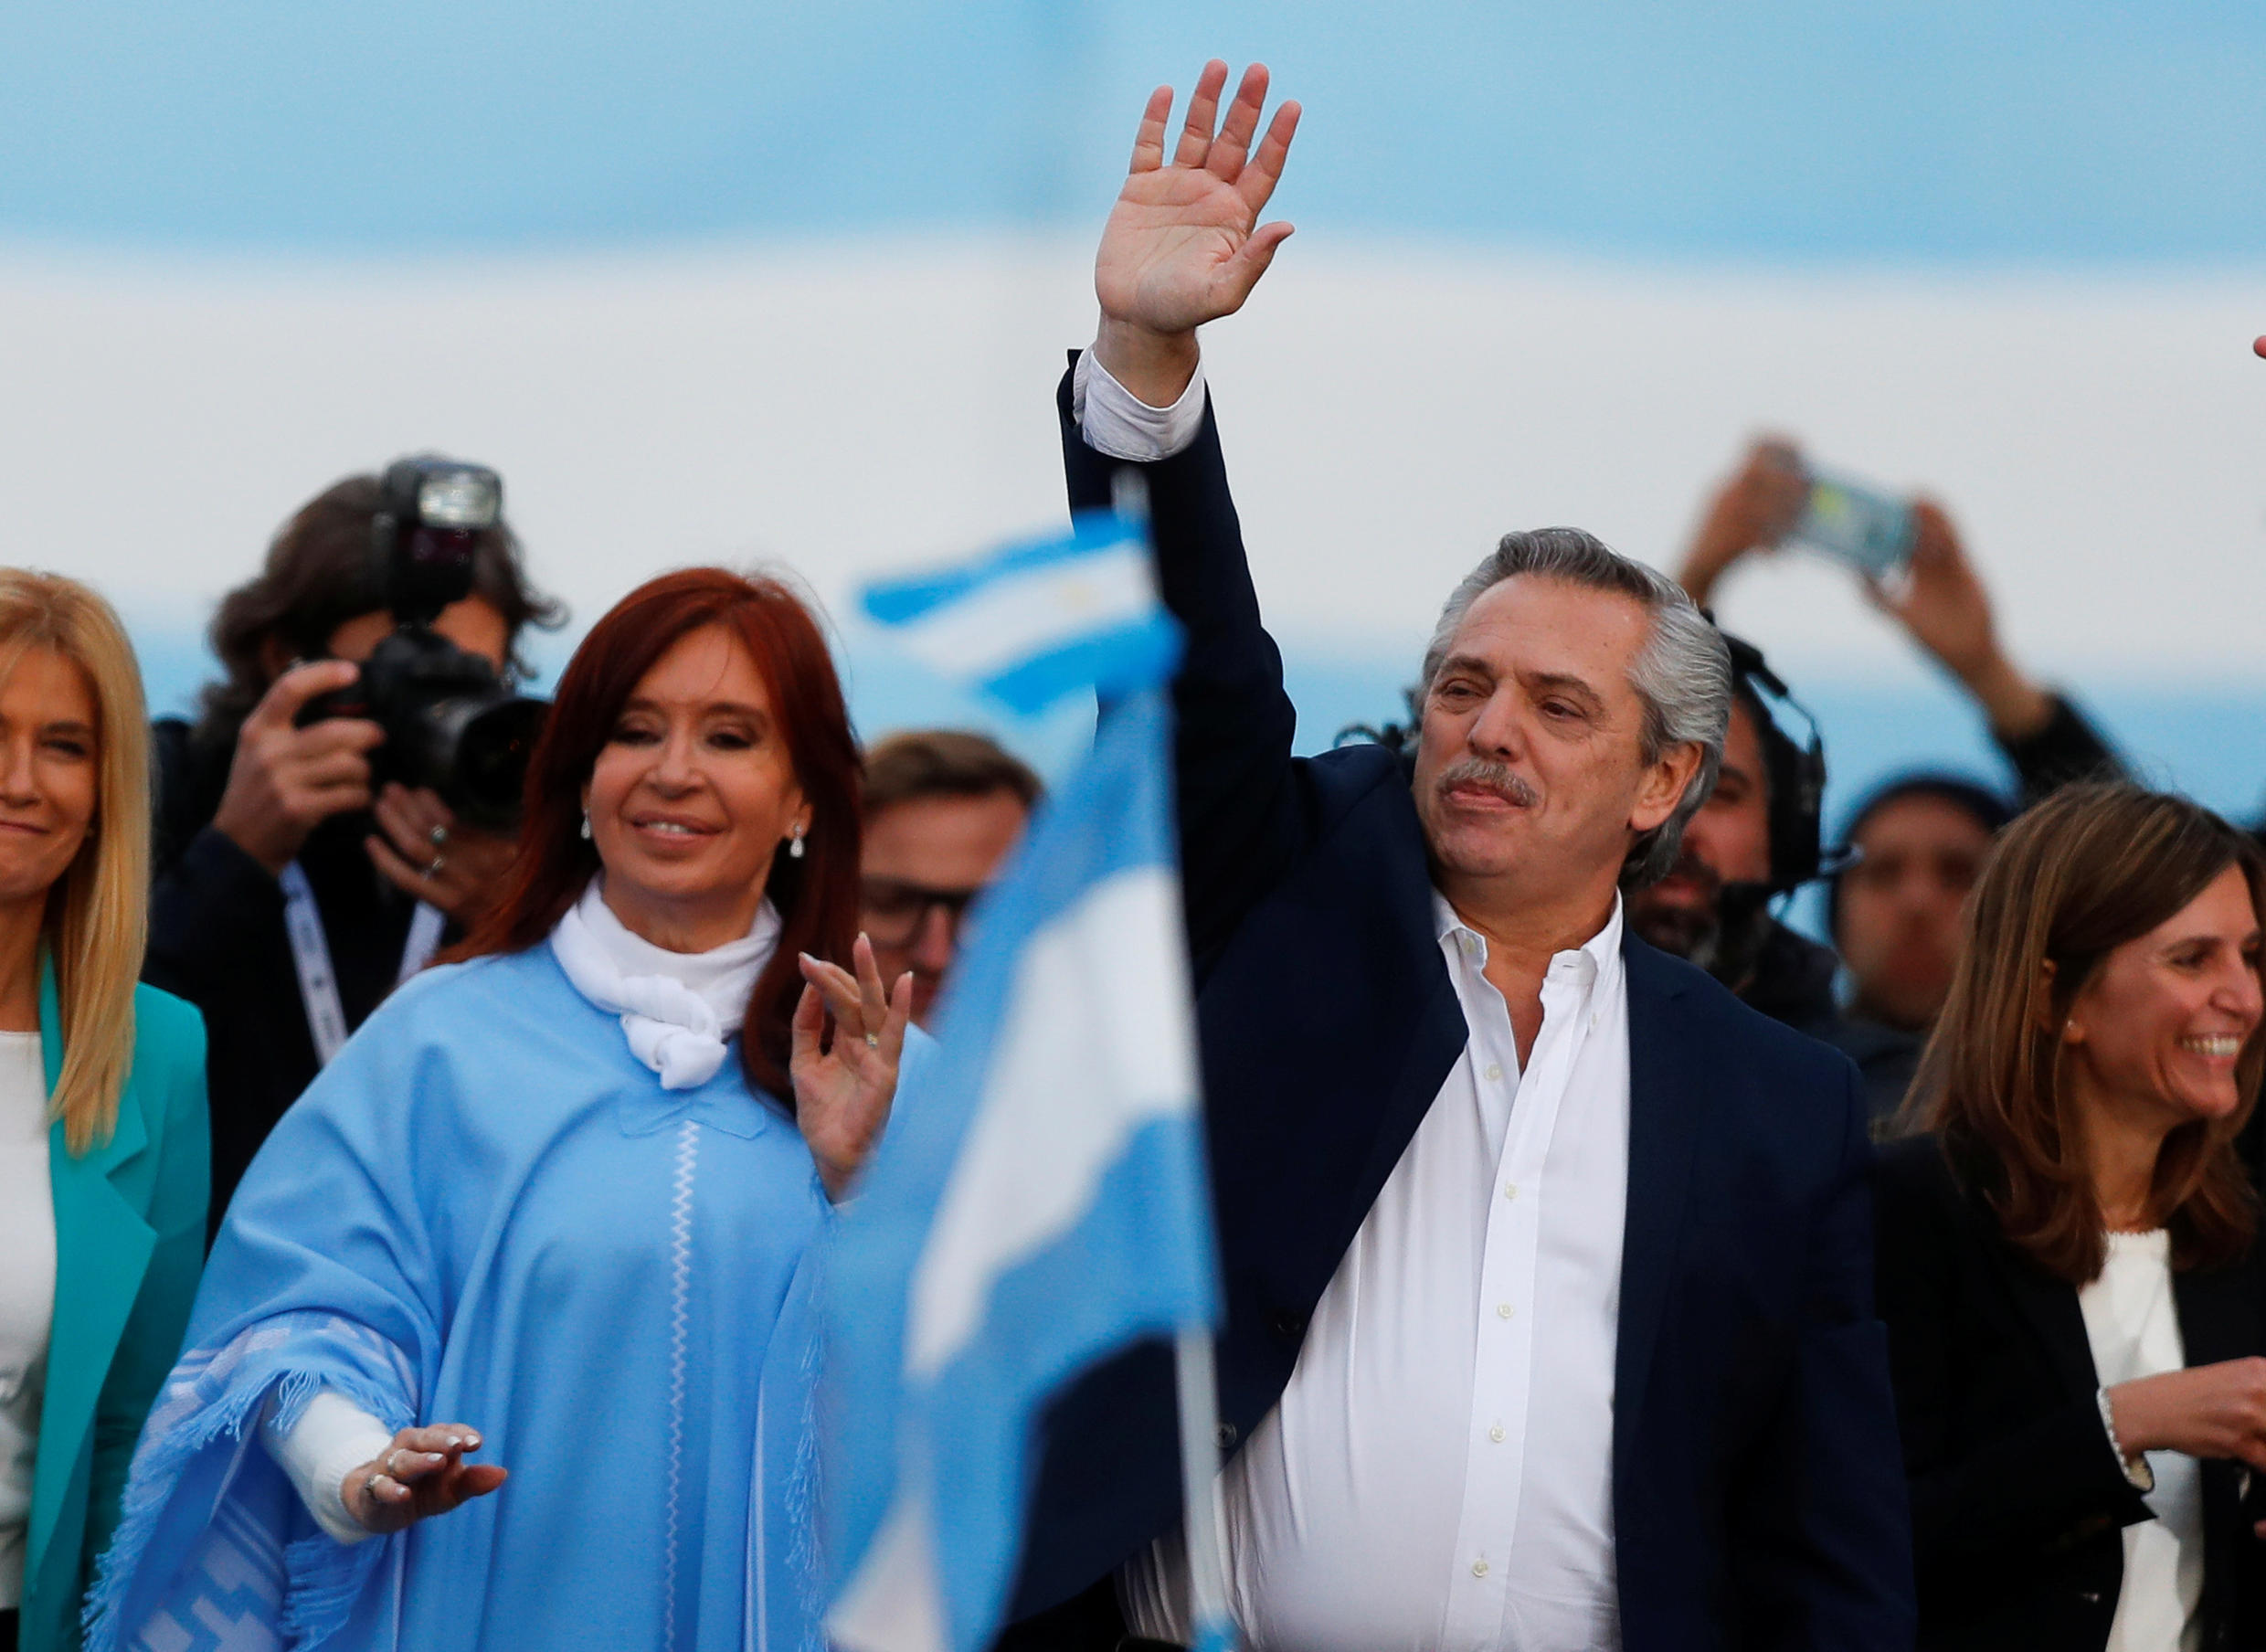 Argentina's presidential candidate Alberto Fernandez and his running mate former President Cristina Fernandez greet supporters during a closing campaign rally in Mar del Plata, Argentina, on October 24, 2019